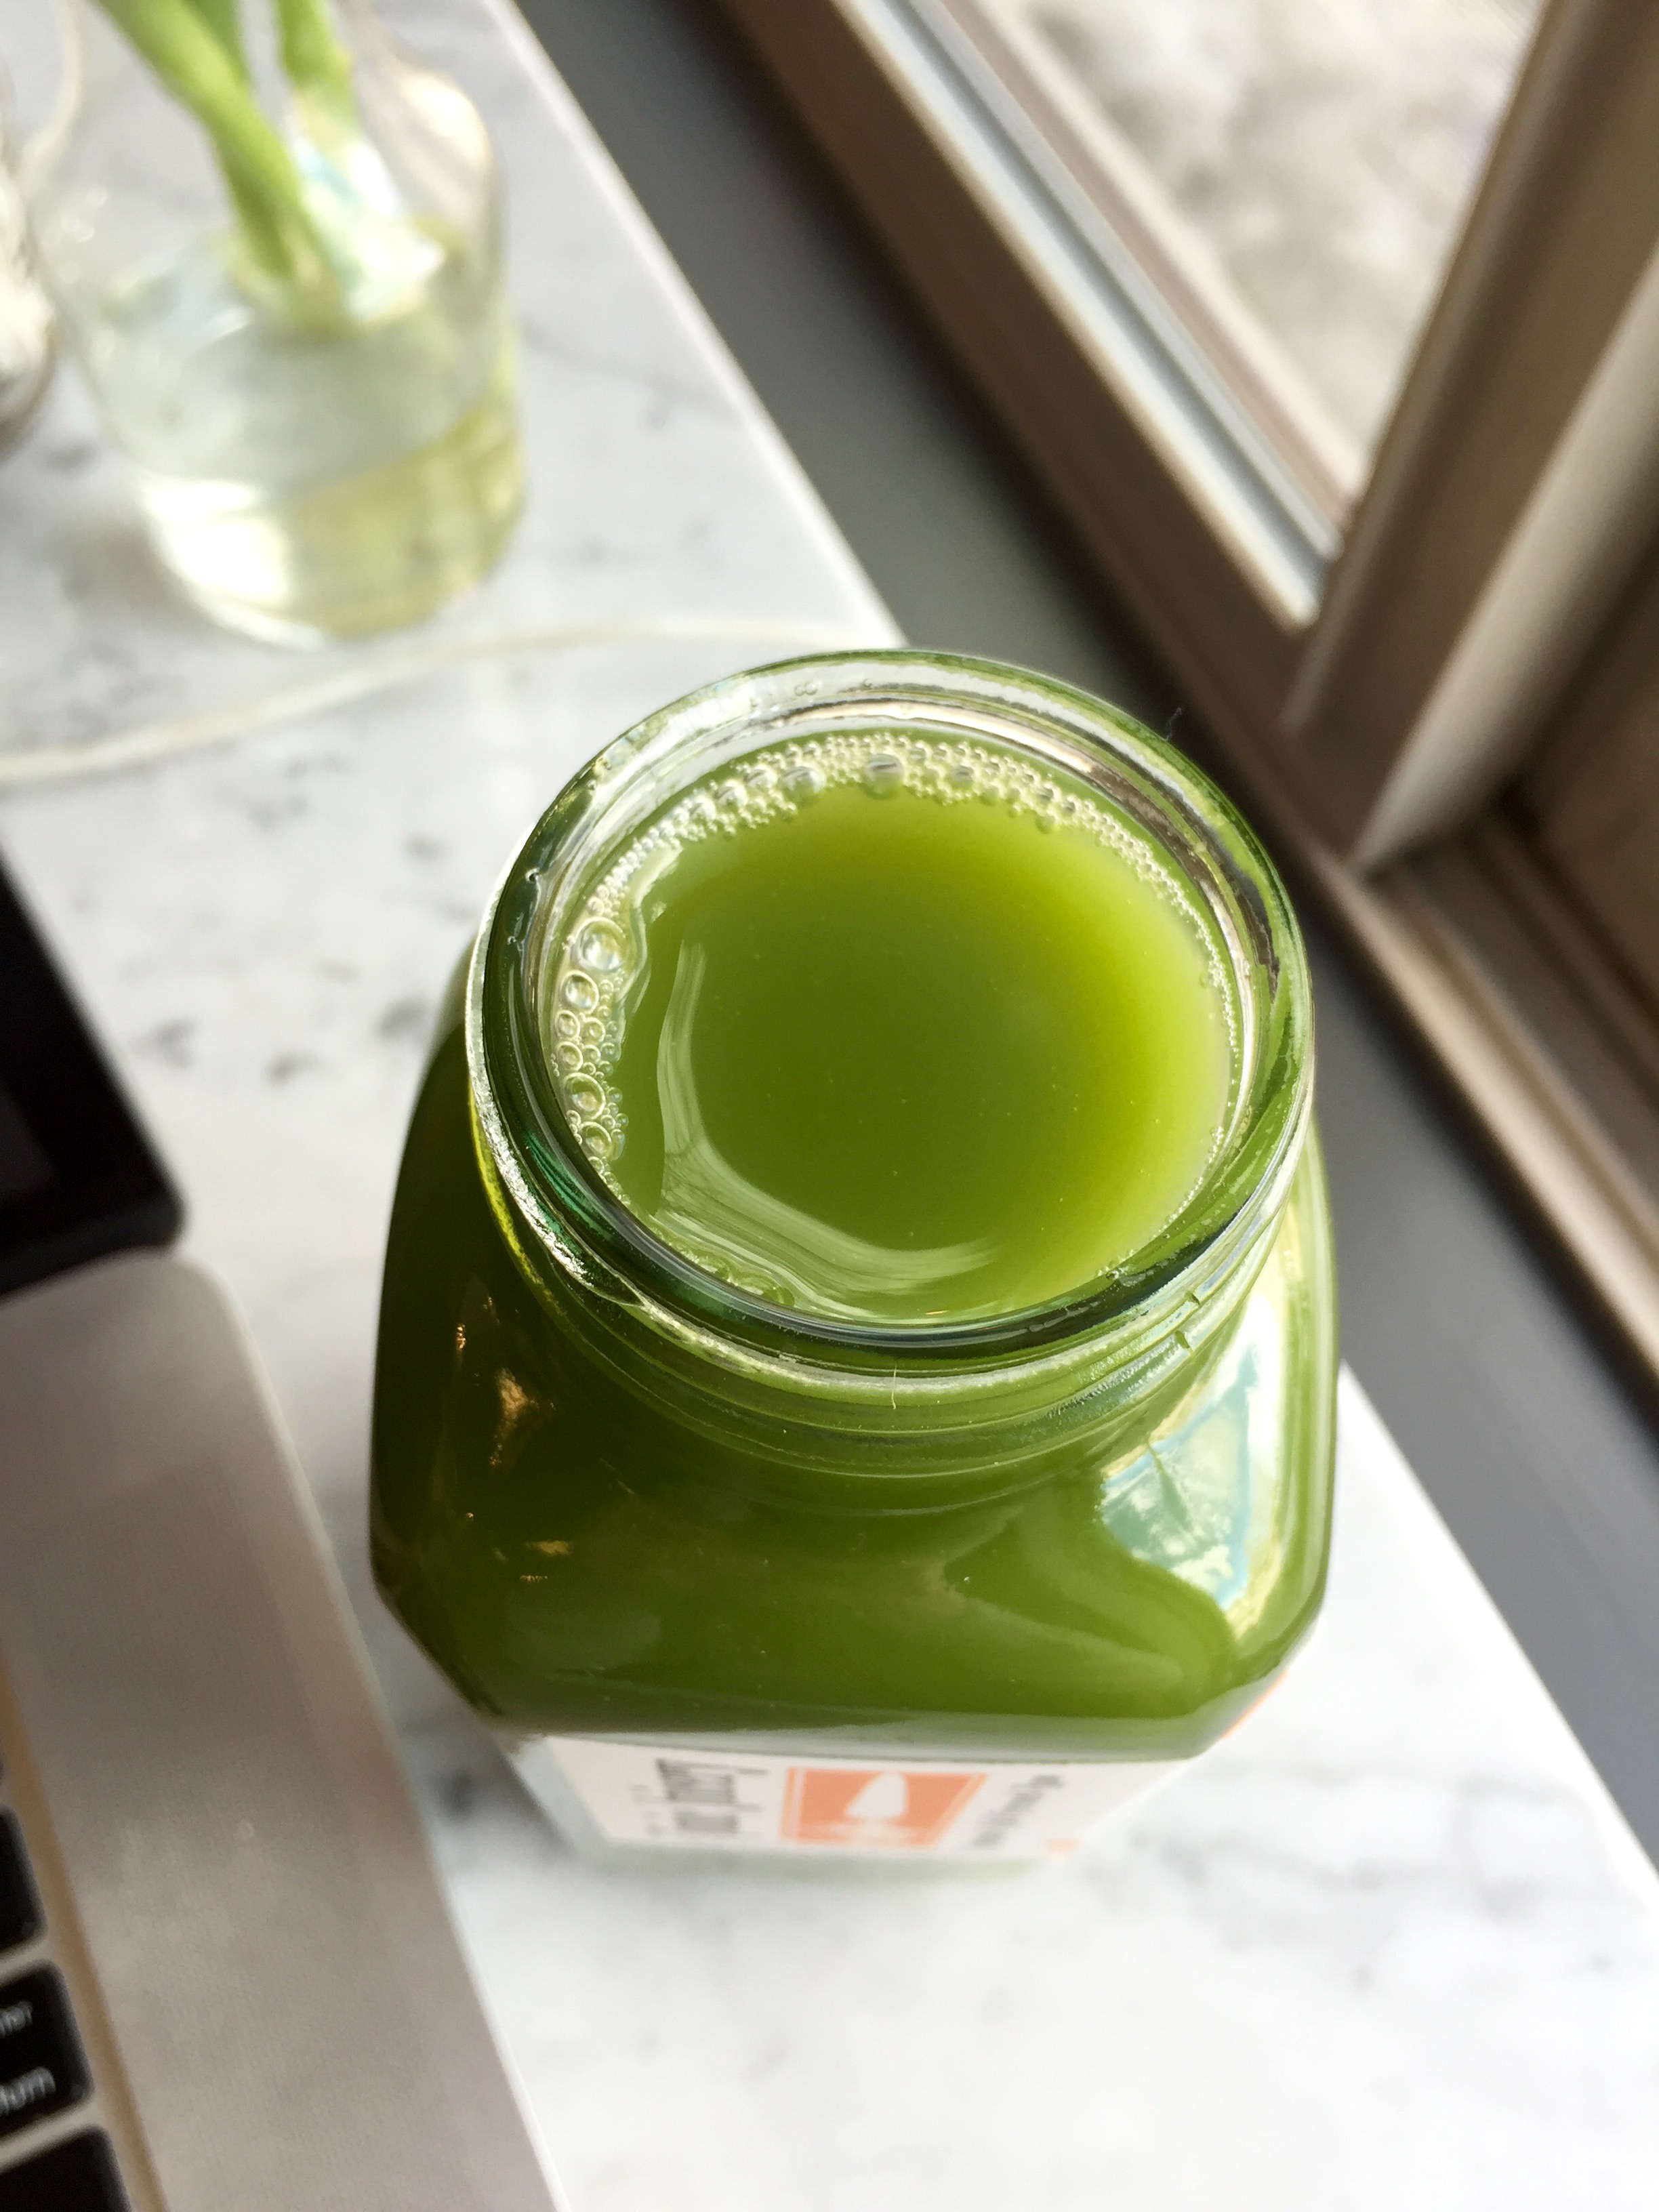 Green juice really is pretty to look at isn't it?